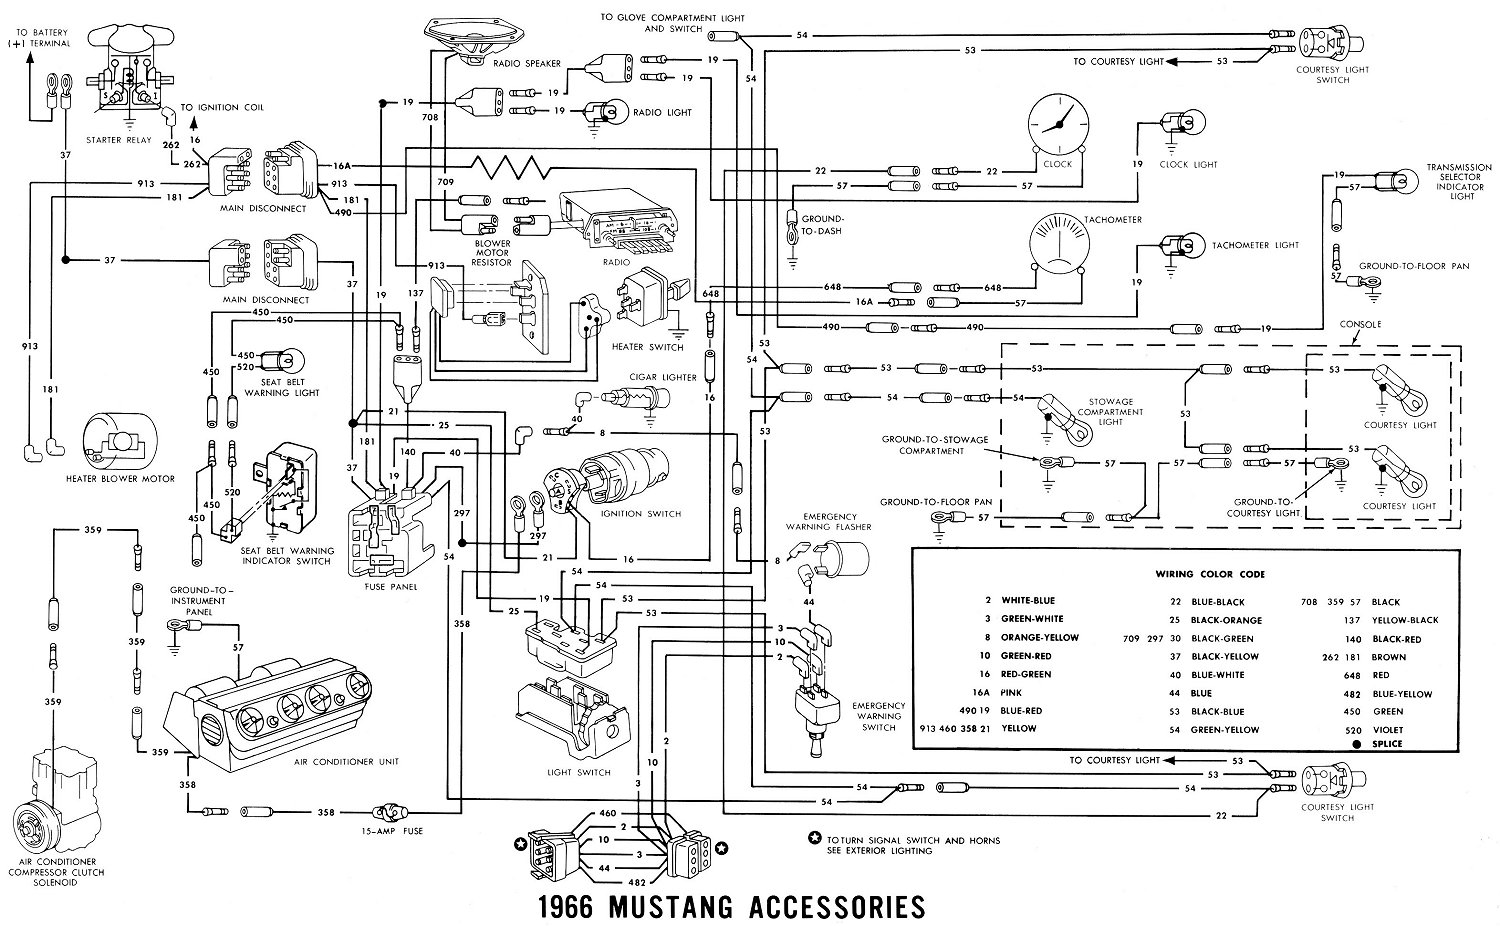 66acces1 1966 mustang wiring diagrams average joe restoration 1965 ford mustang wiring diagram at crackthecode.co